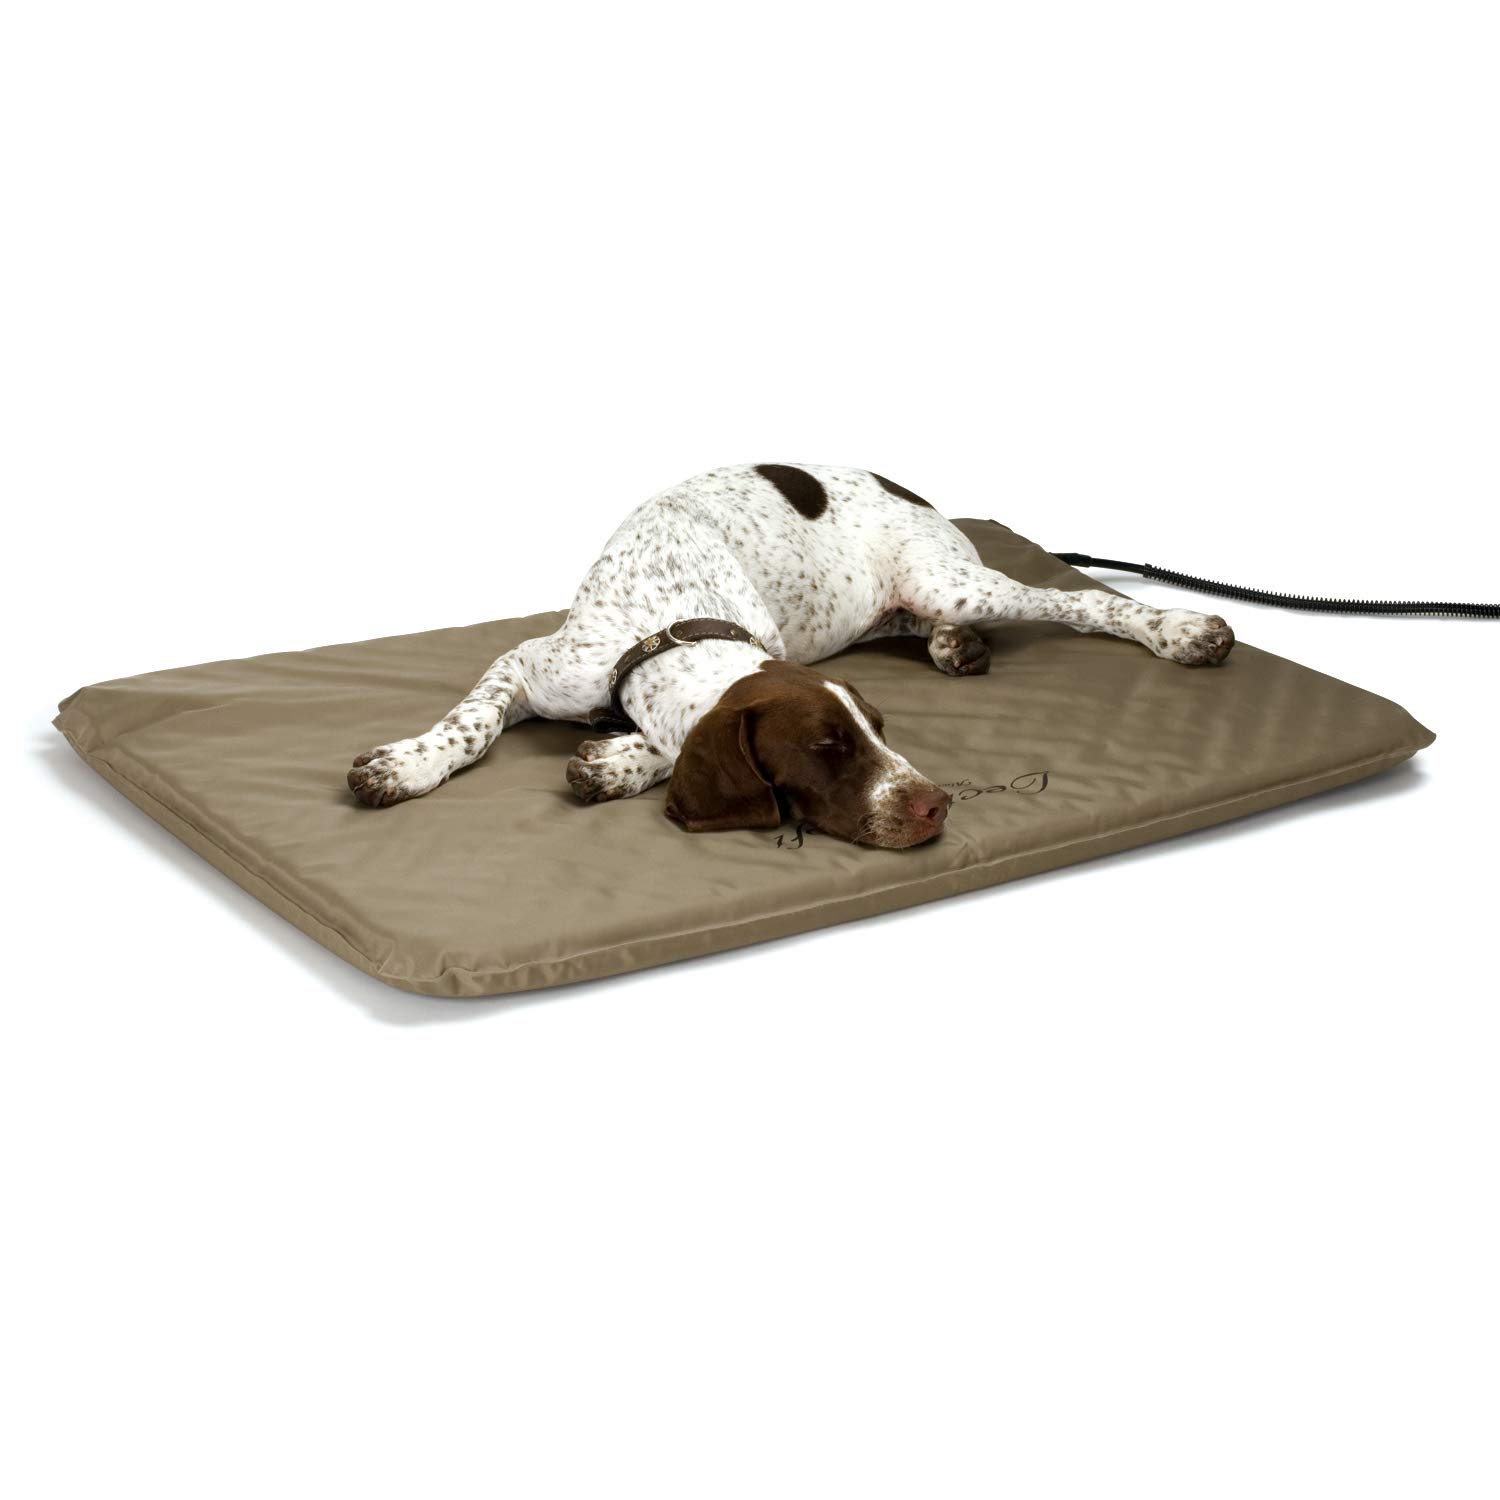 K&H Pet Products Lectro-Soft Outdoor Heated Pet Bed Large Tan 25'' x 36'' 60W